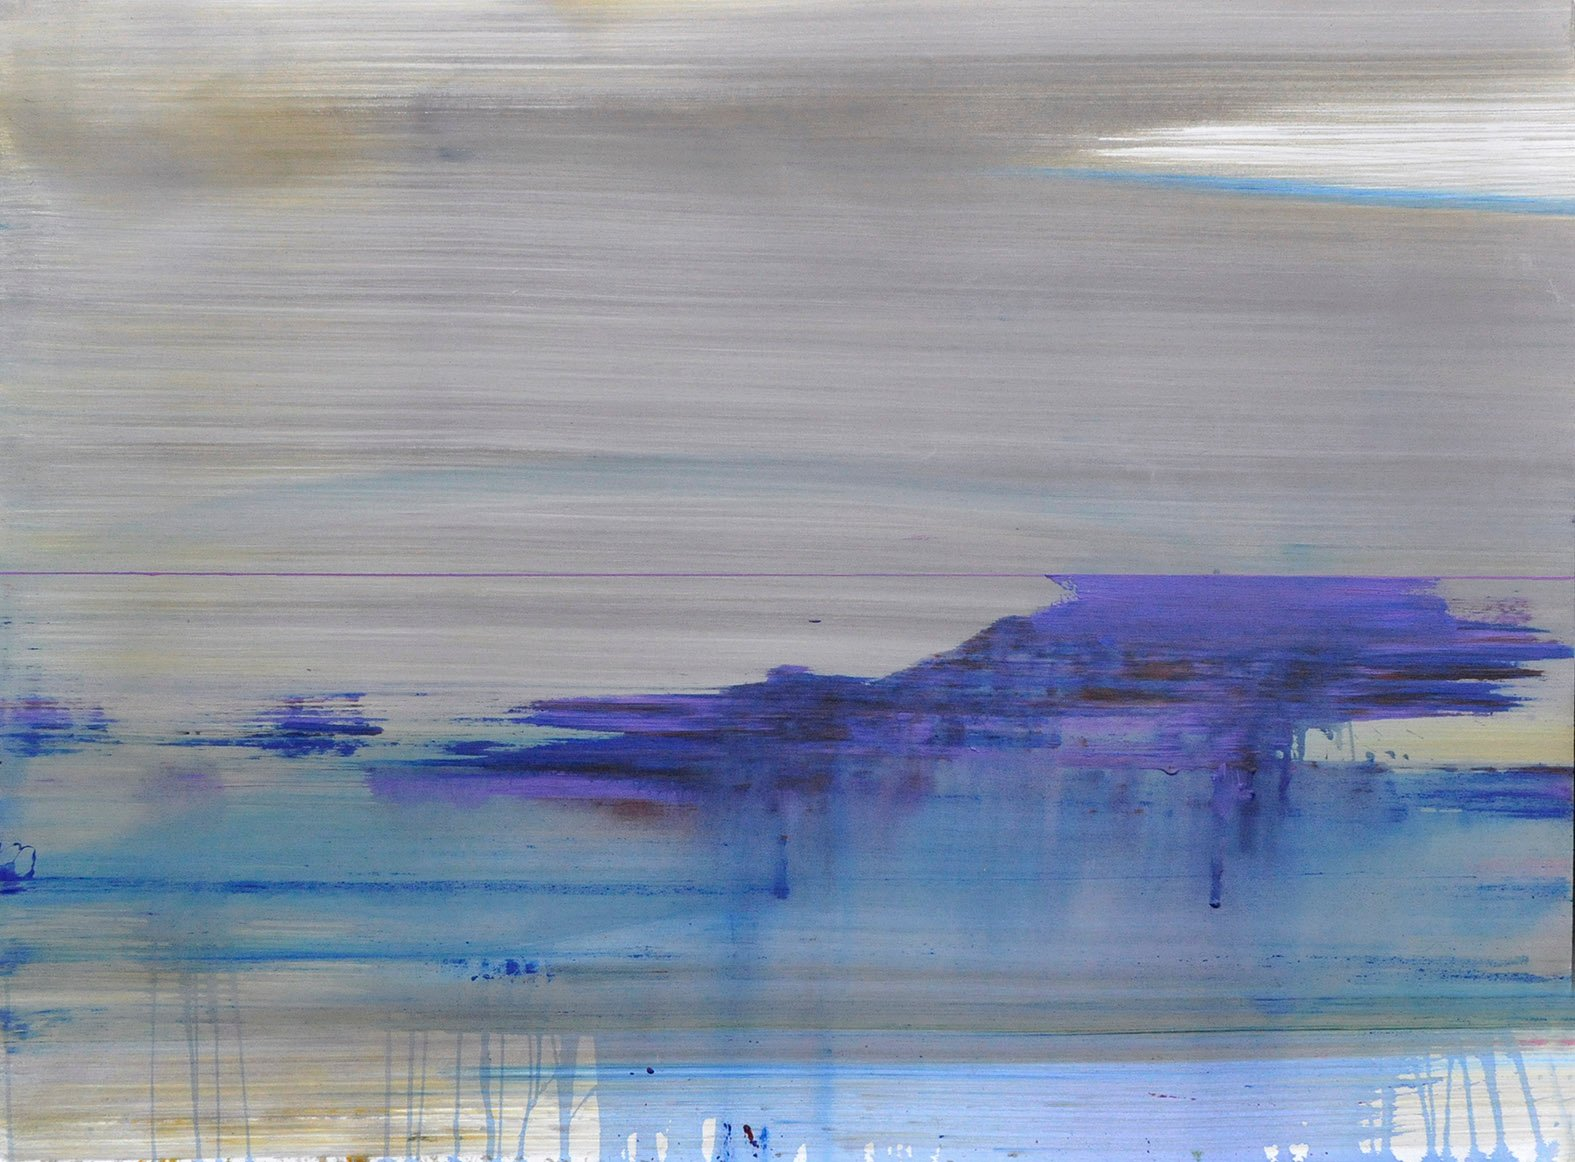 I JUST SIT HERE AND WATCH THE RIVER FLOW _166 x 133 cm_2015